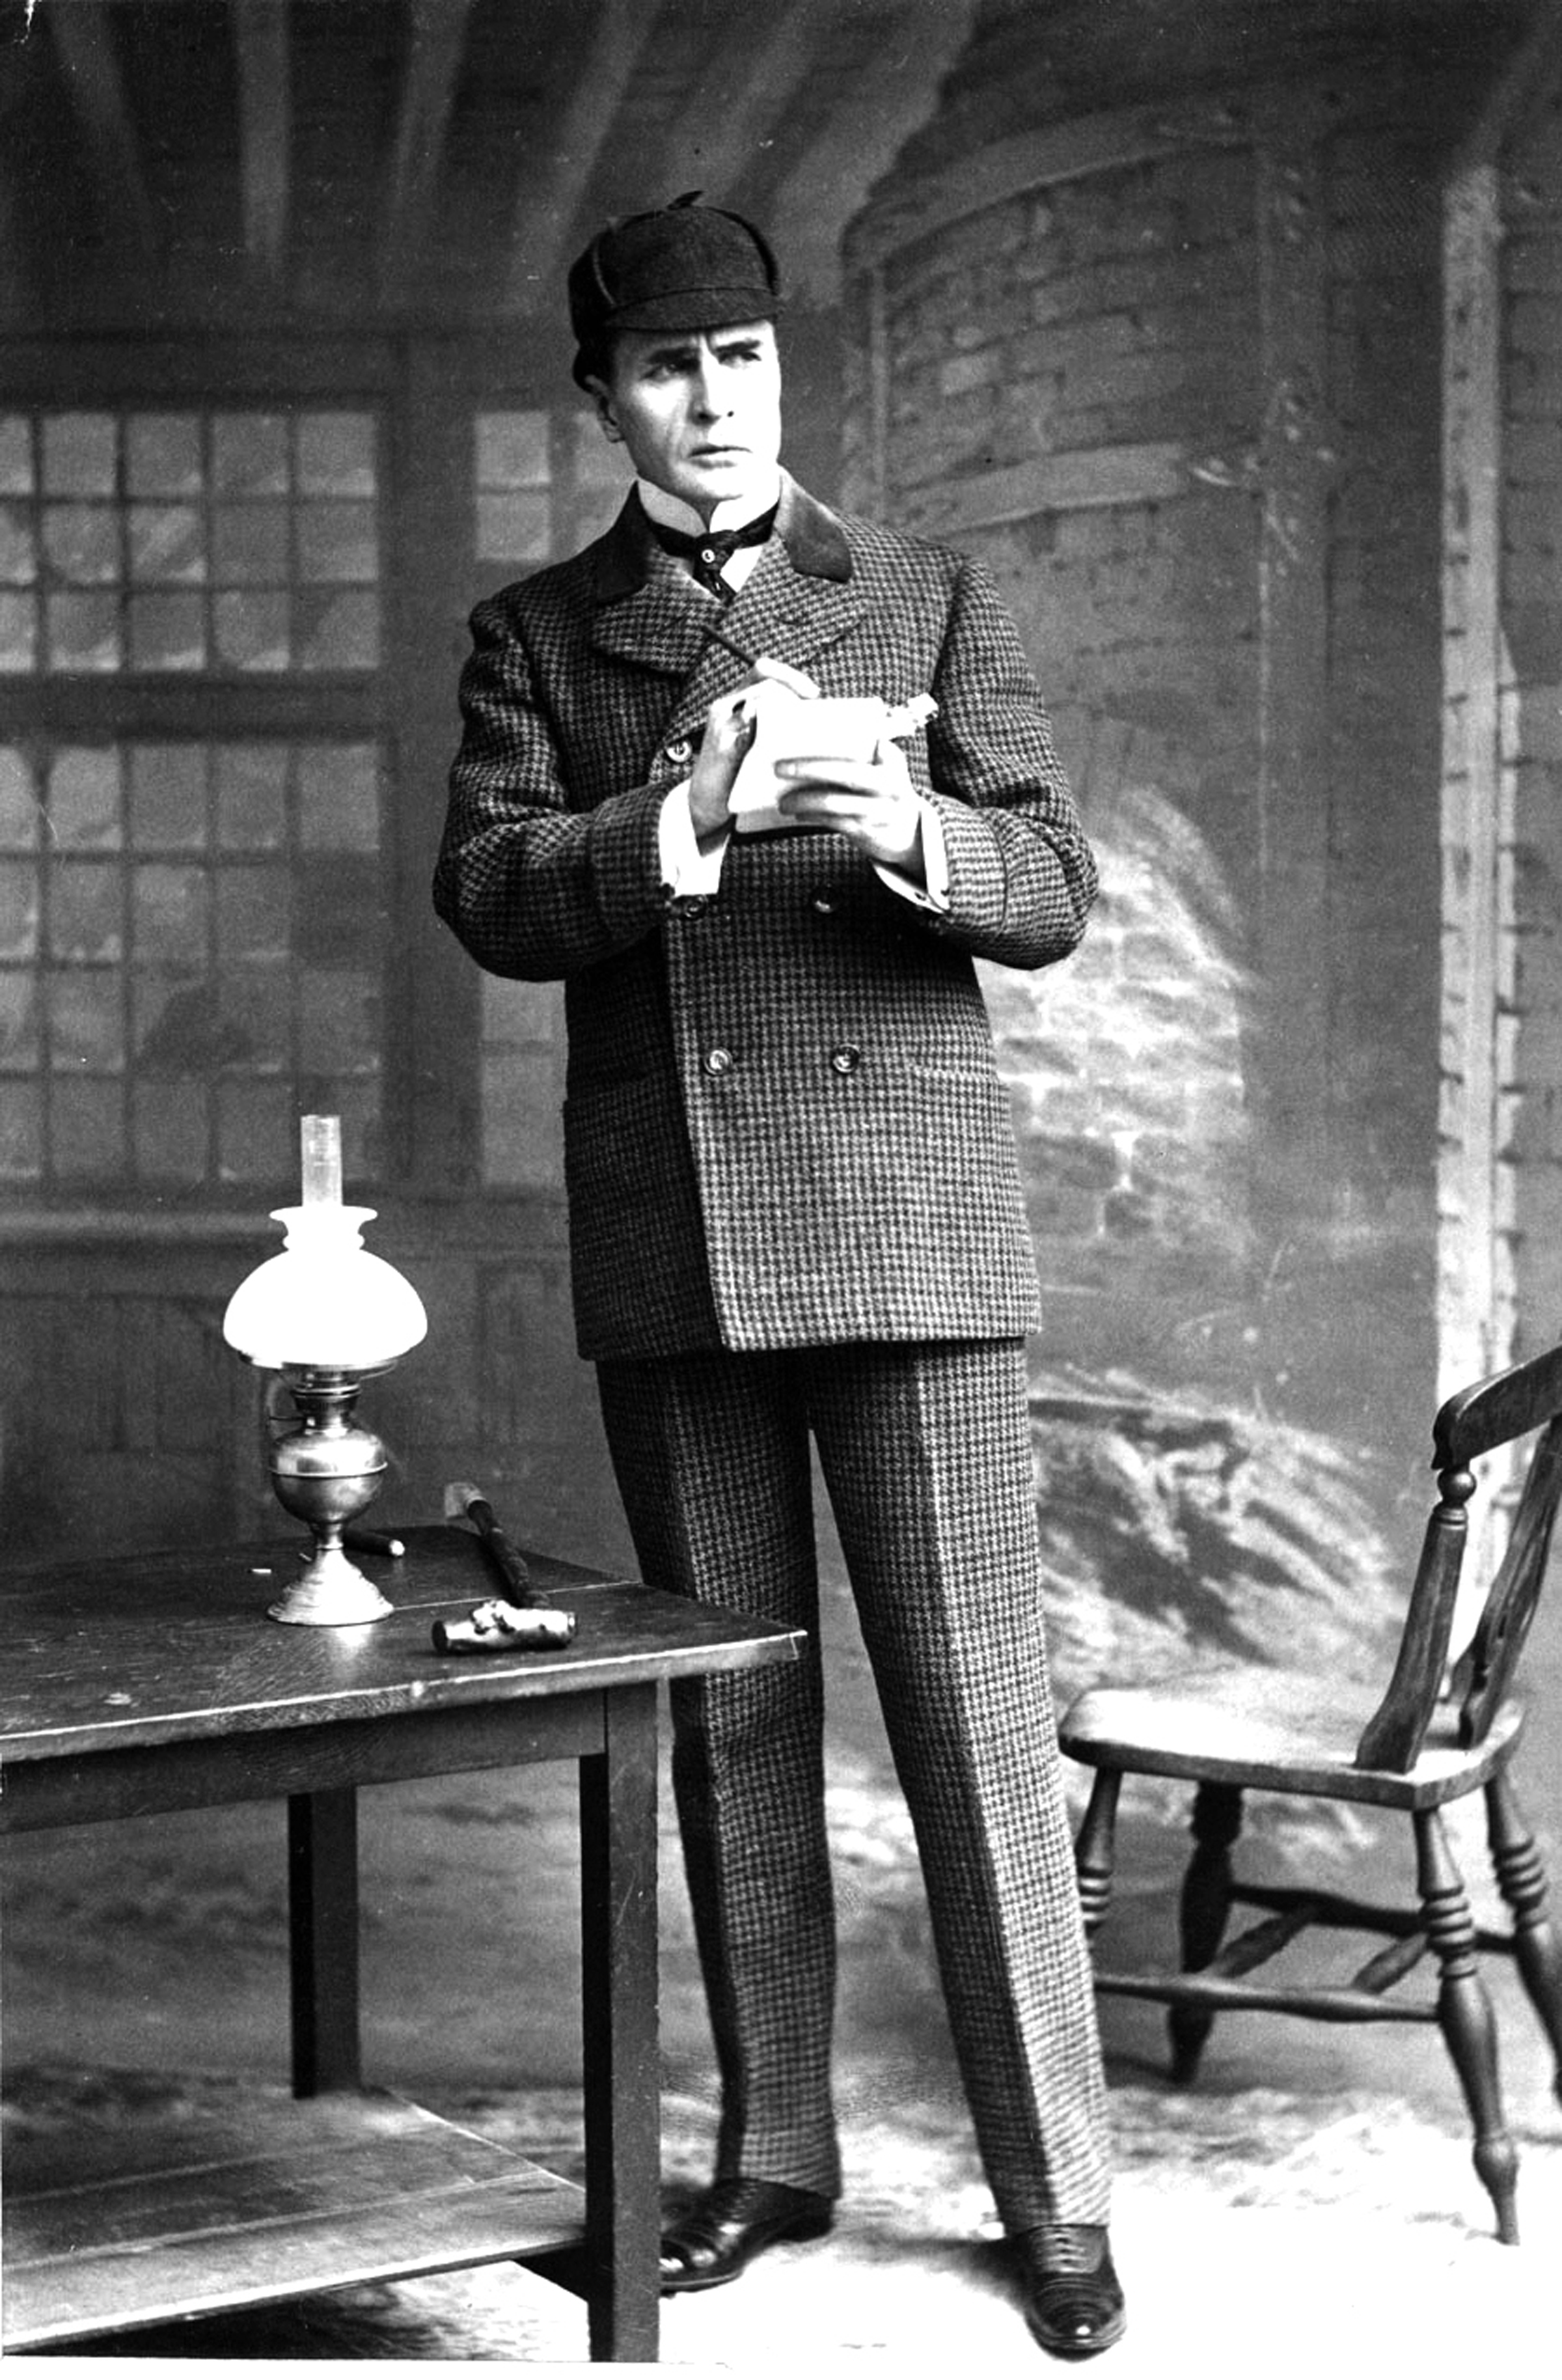 Stage actor William Gillette stars in the original silent film adaptation of 'Sherlock Holmes' (1916), to be shown with live music by Jeff Rapsis on Thursday, Aug. 17 at 7 p.m. at the Leavitt Theatre in Ogunquit. SUBMITTED PHOTO